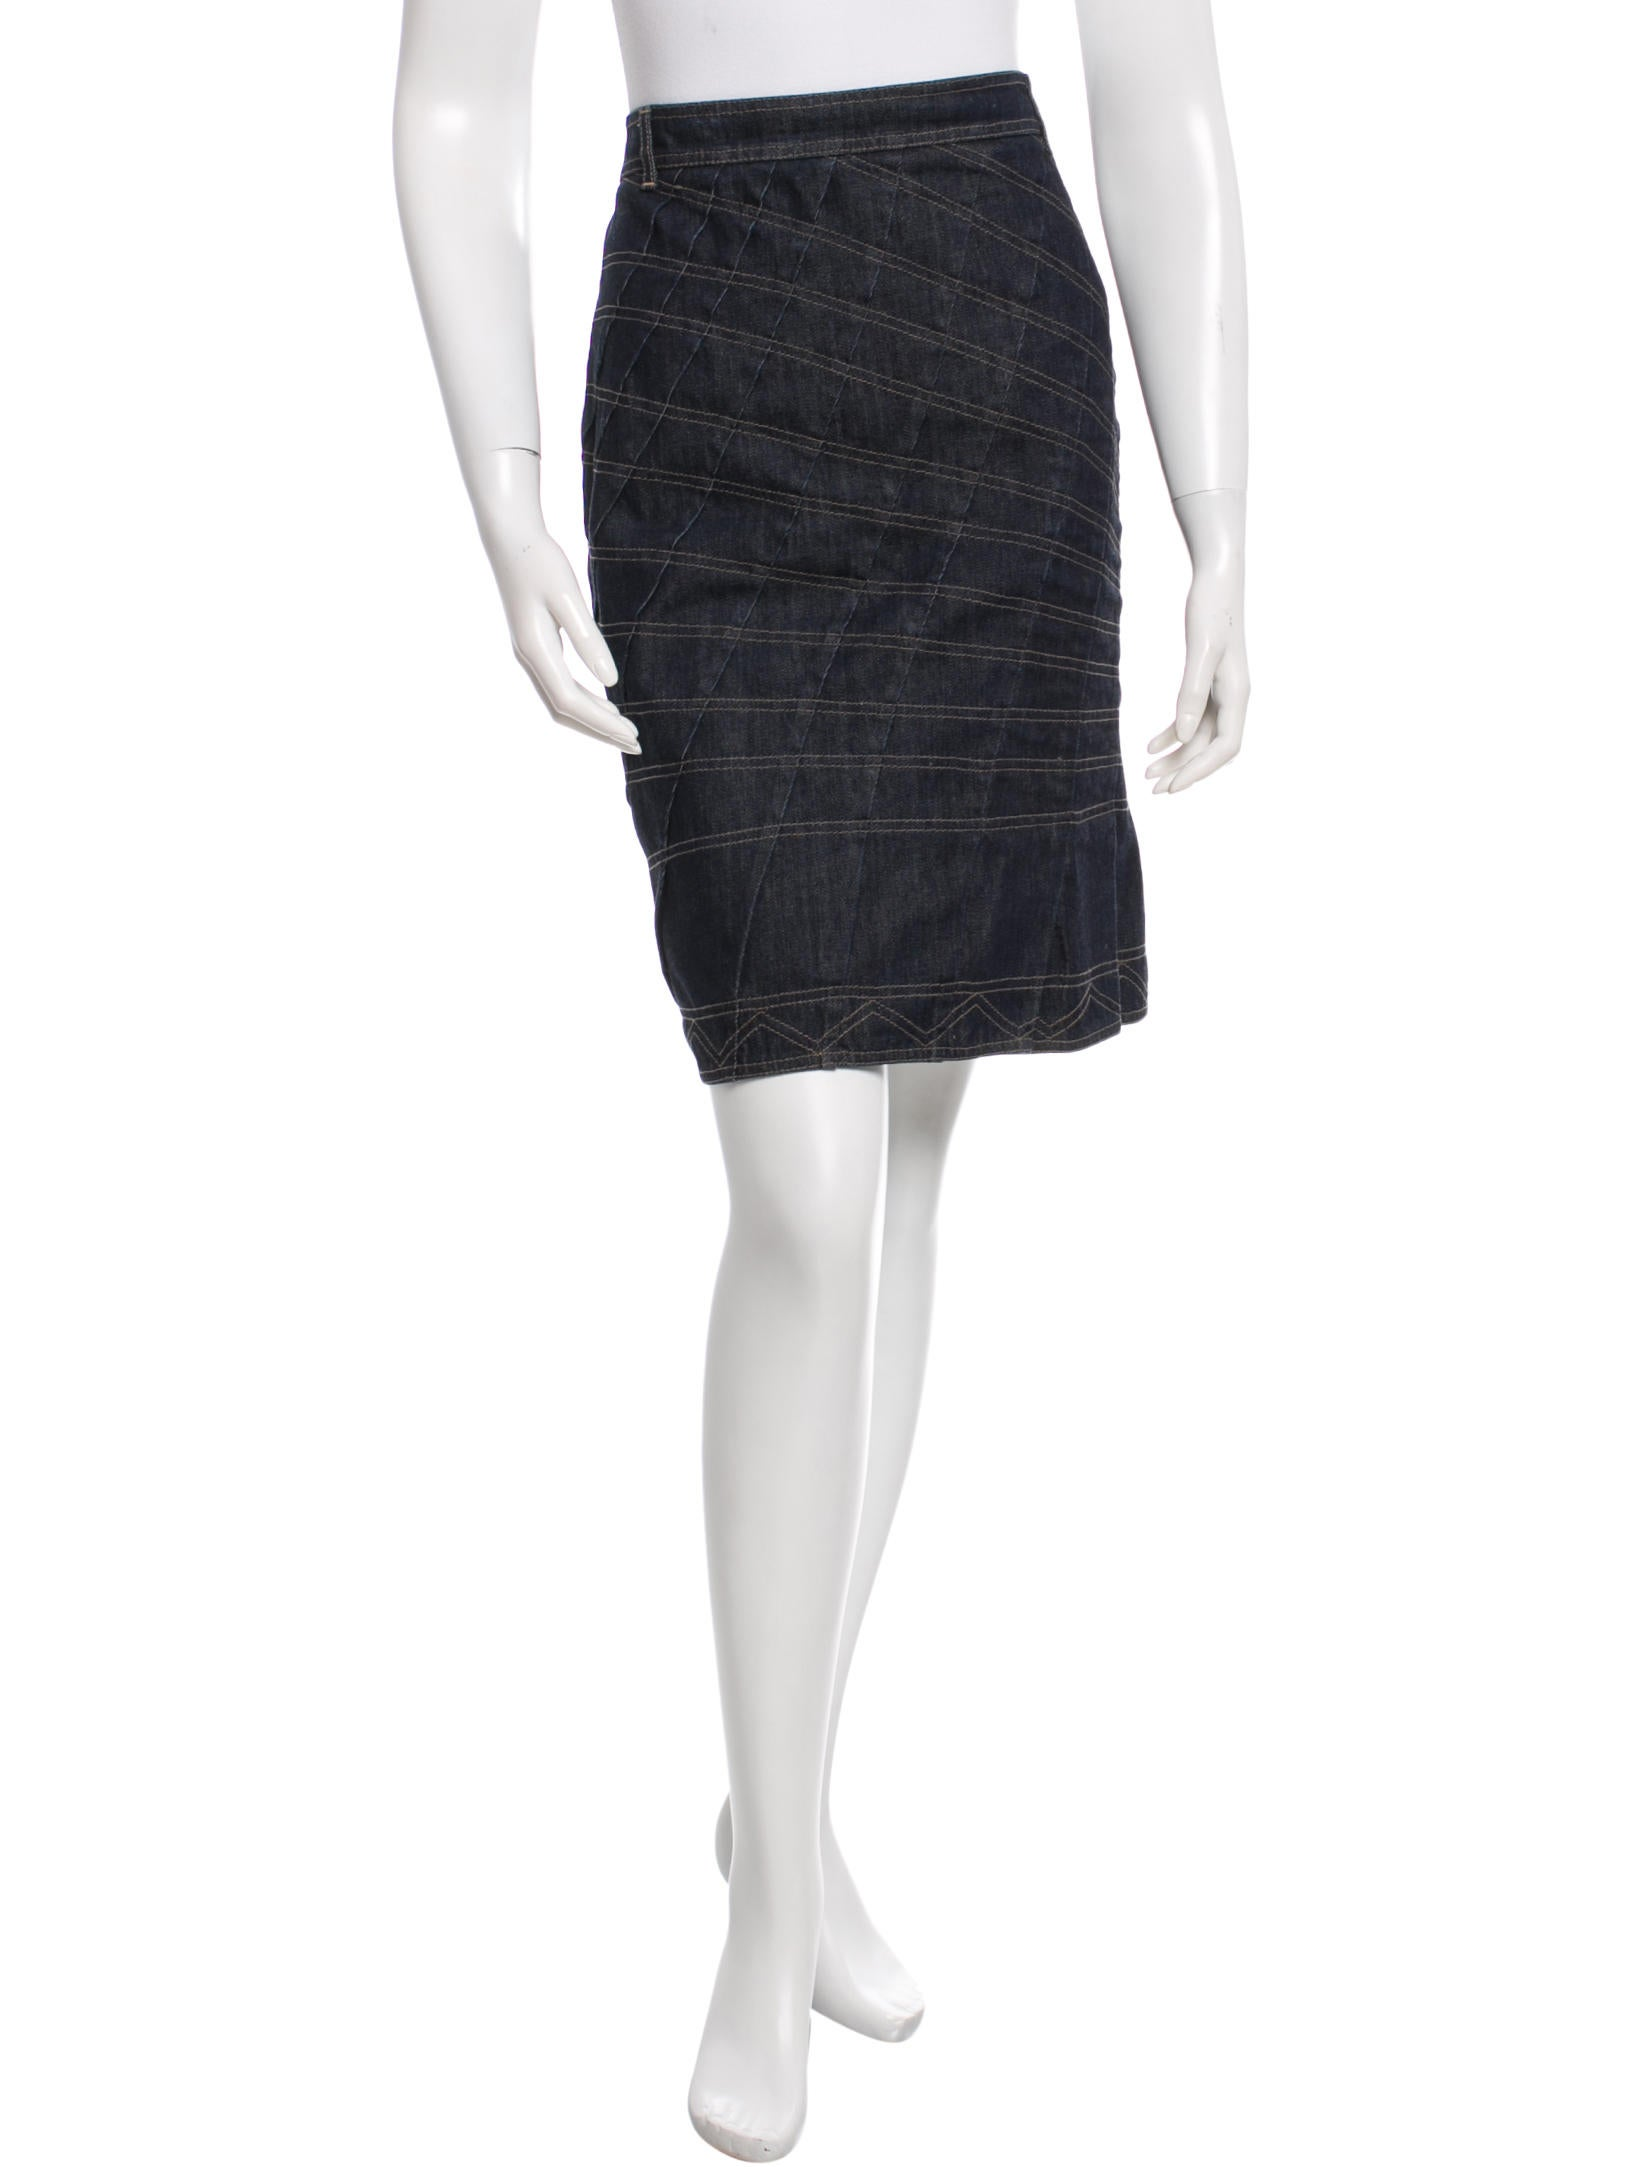 Gucci Pleated Denim Skirt - Clothing - GUC90137 | The RealReal